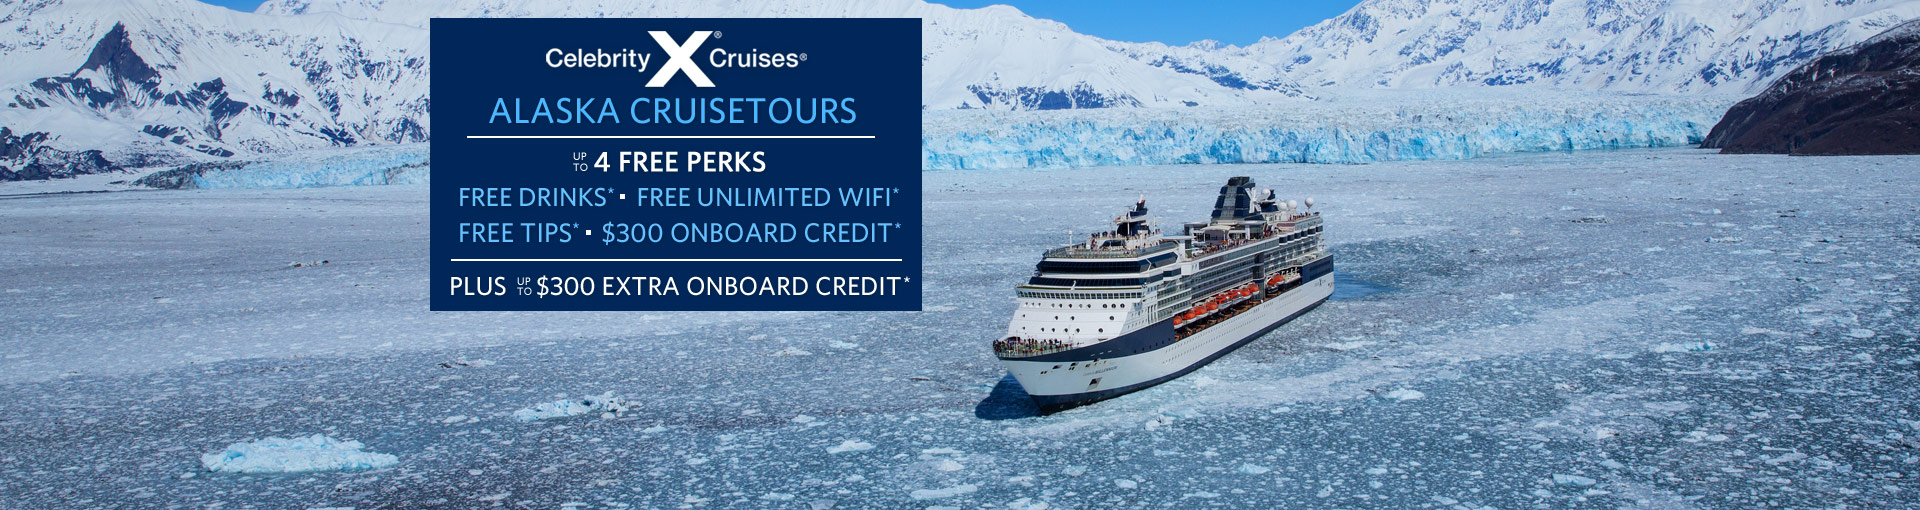 Celebrity Cruises: up to 4 FREE Perks